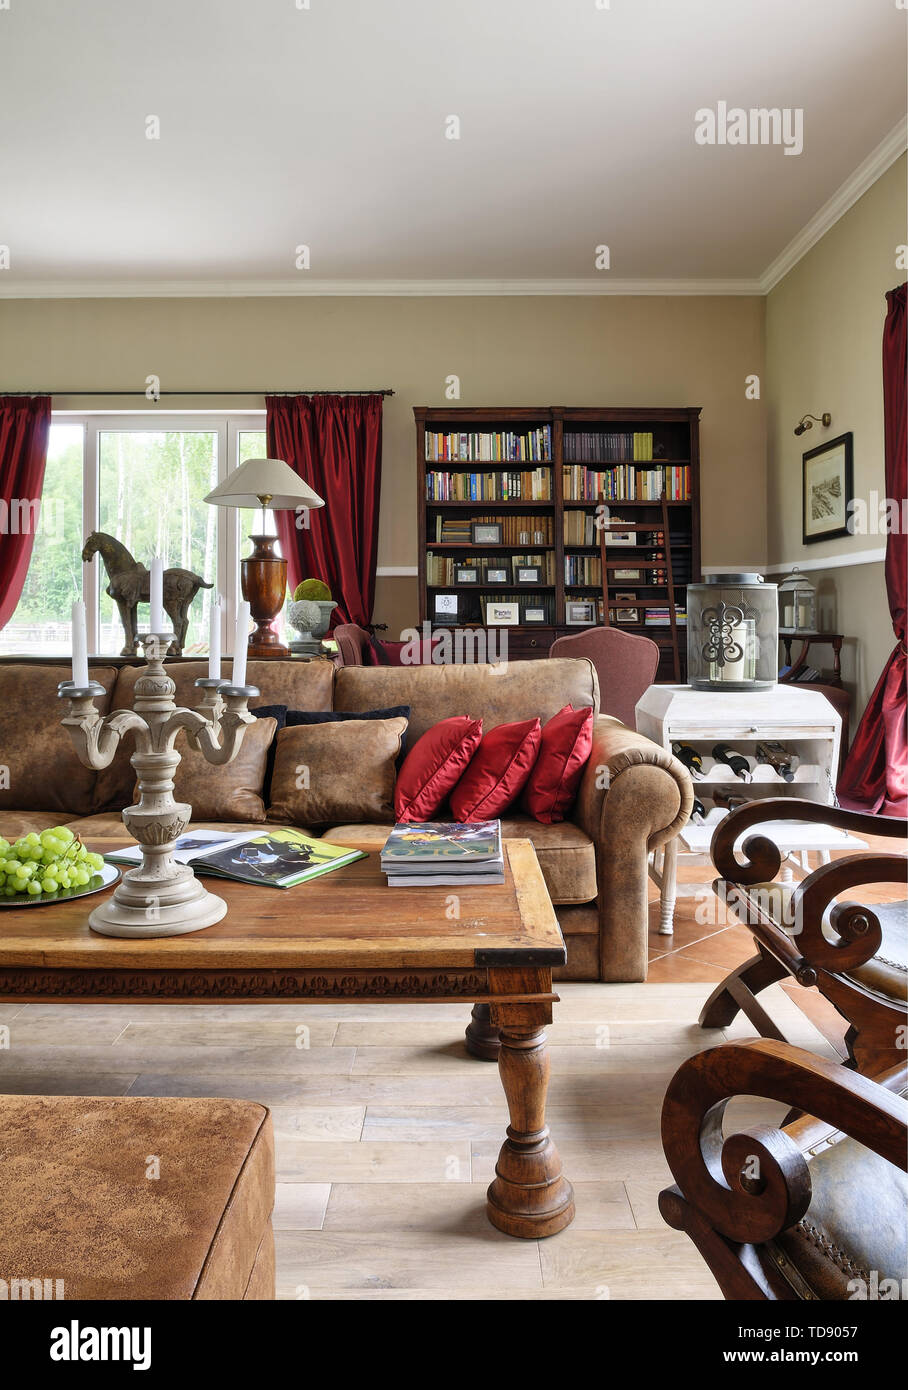 Coffee table in front of leather club sofa in traditional style sitting room    UK AND IRISH RIGHTS ONLY - Stock Image